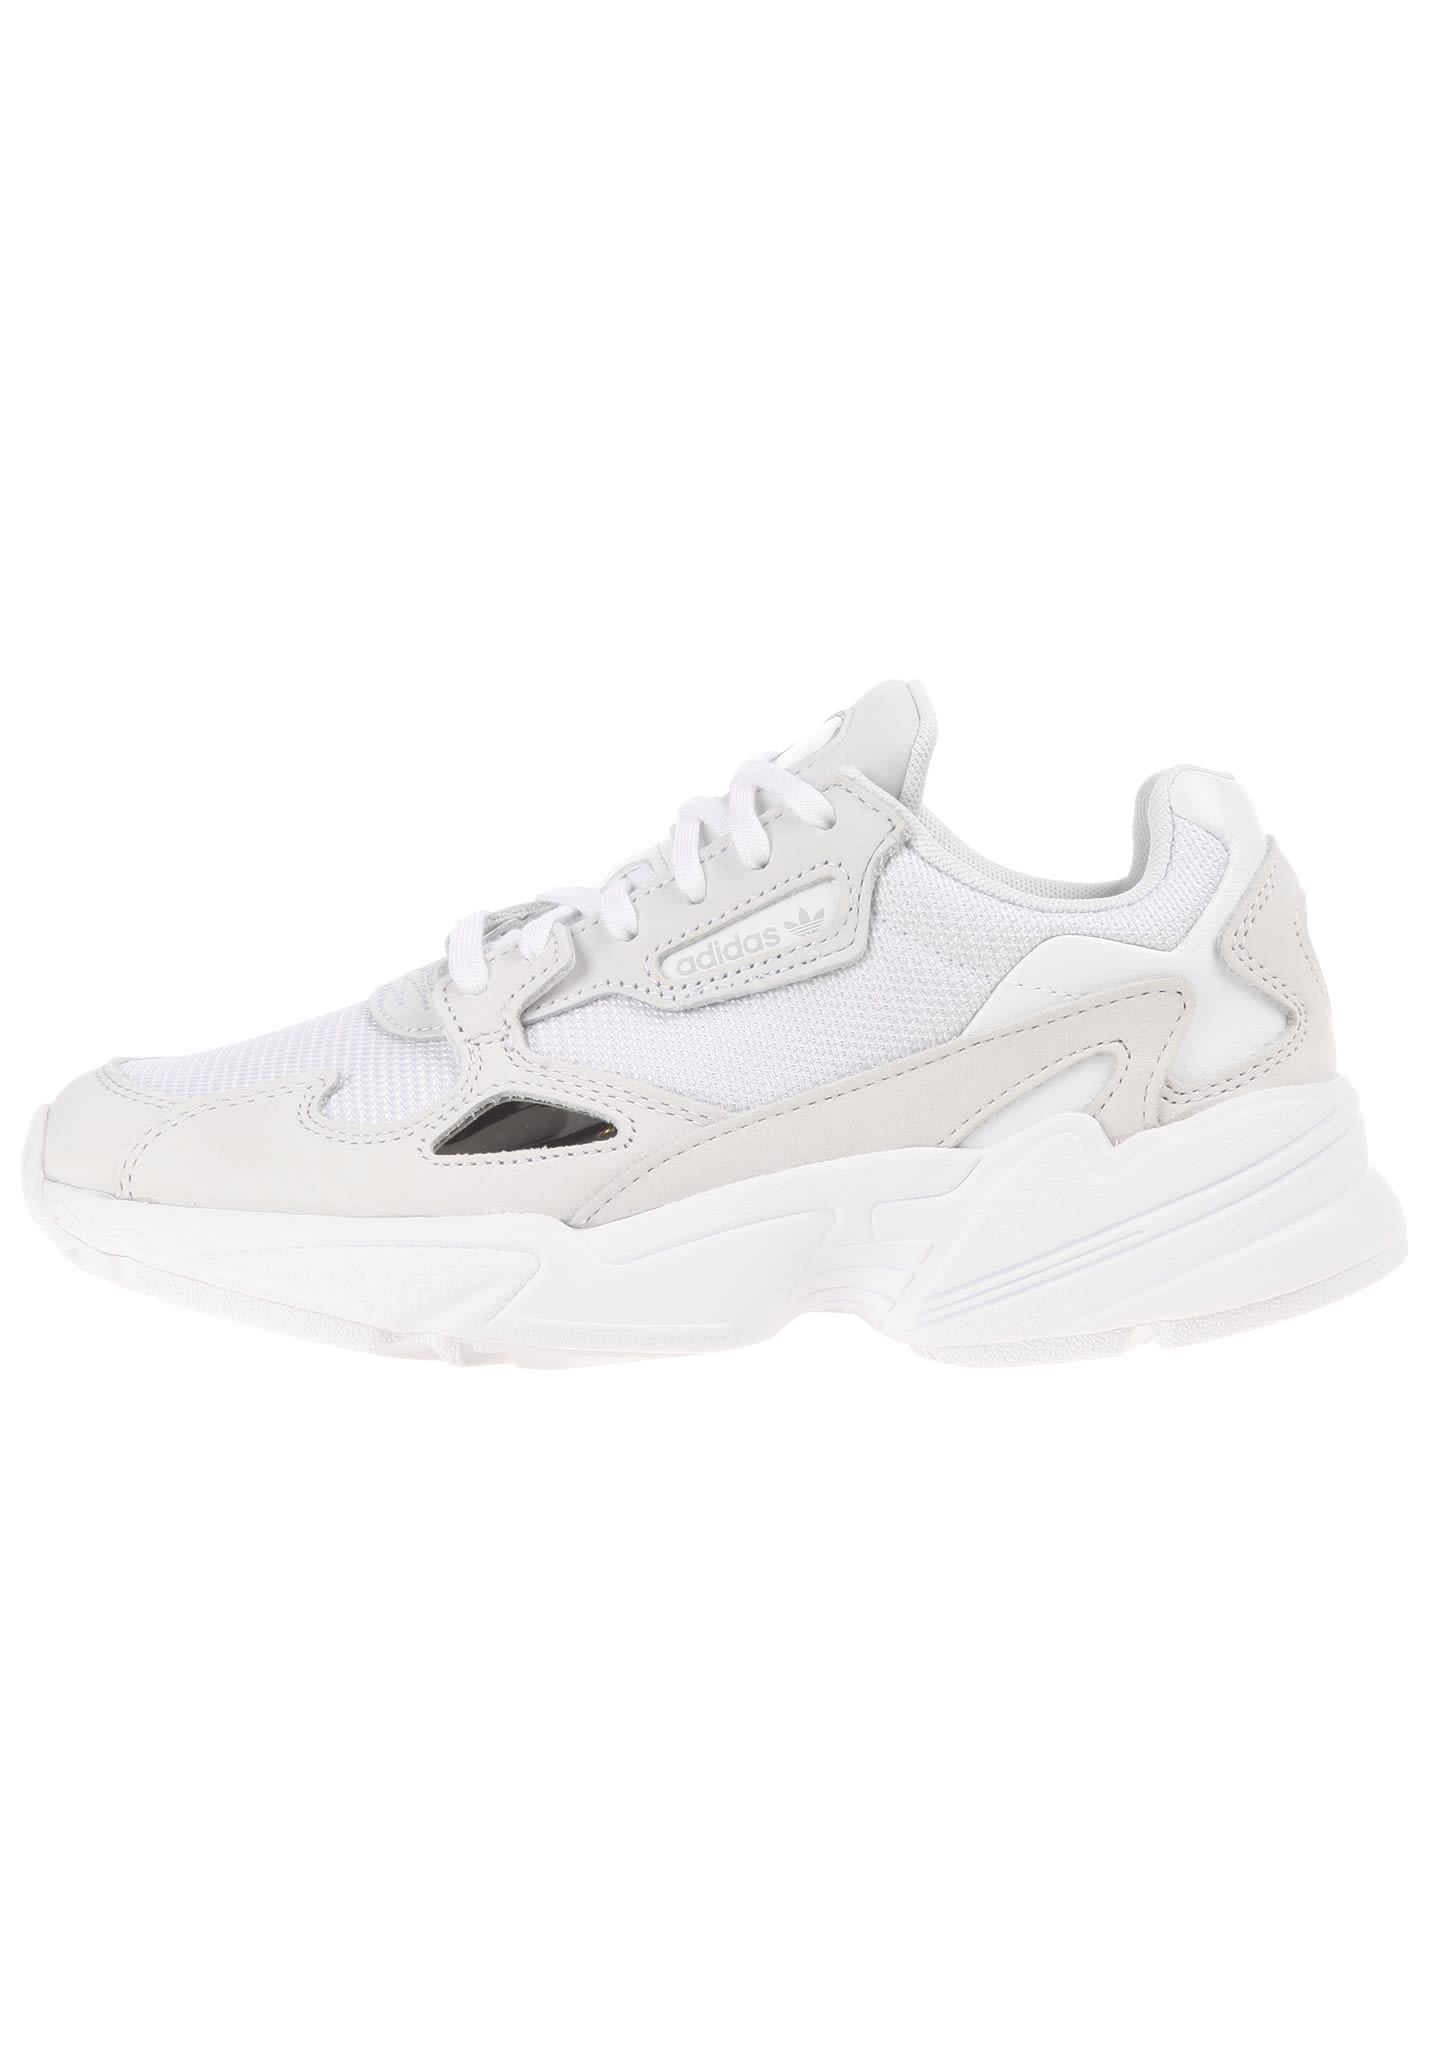 4f7a06719a adidas Originals Falcon - Sneaker für Damen - Weiß - Planet Sports